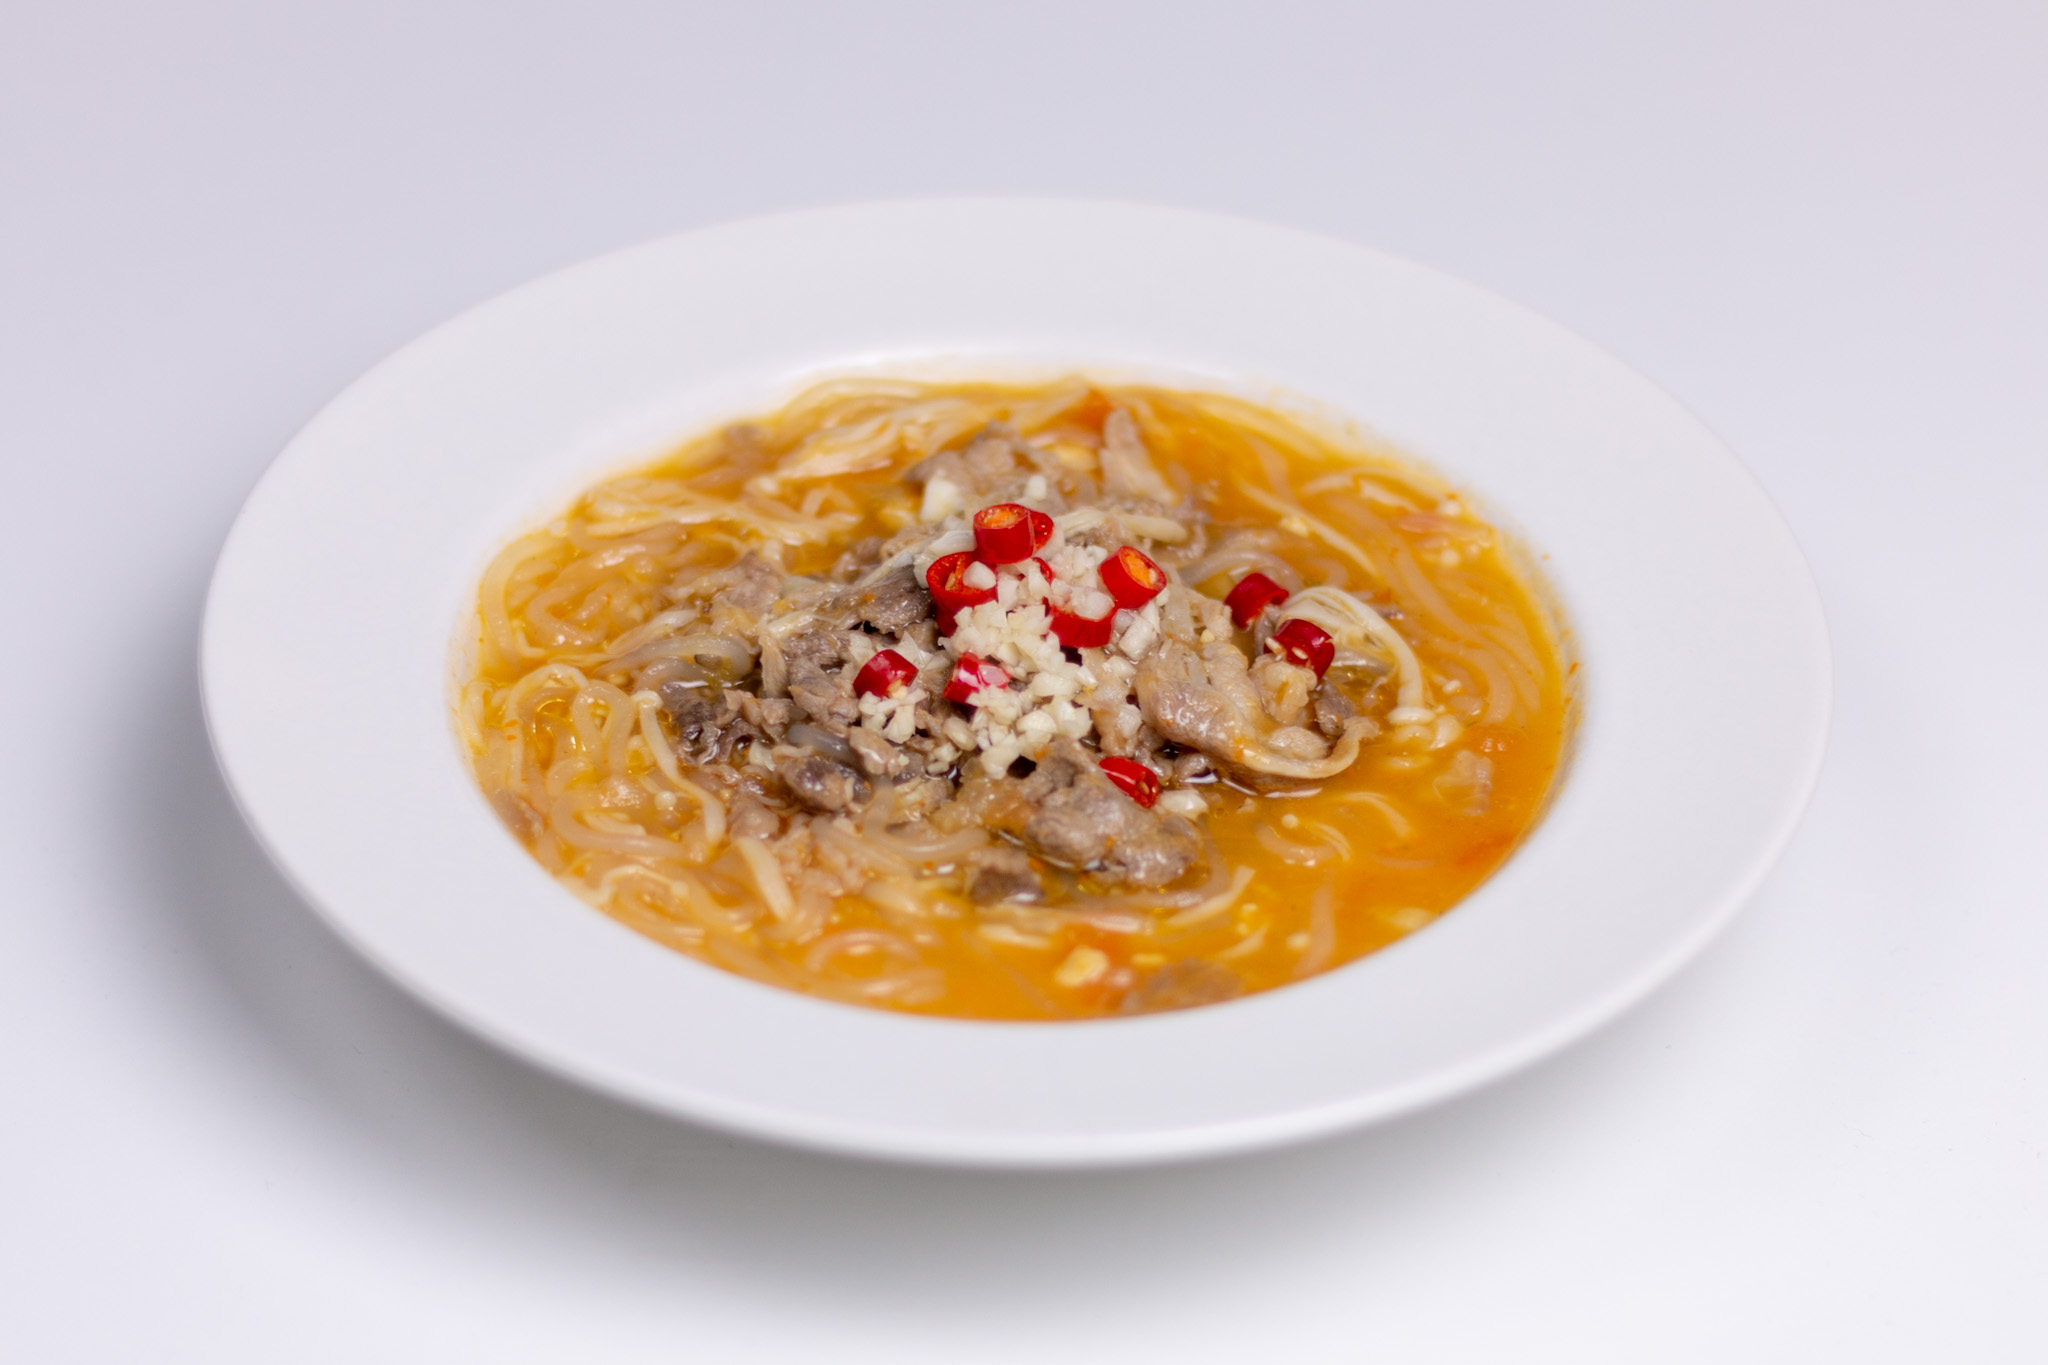 Sliced Beef in Golden Soup